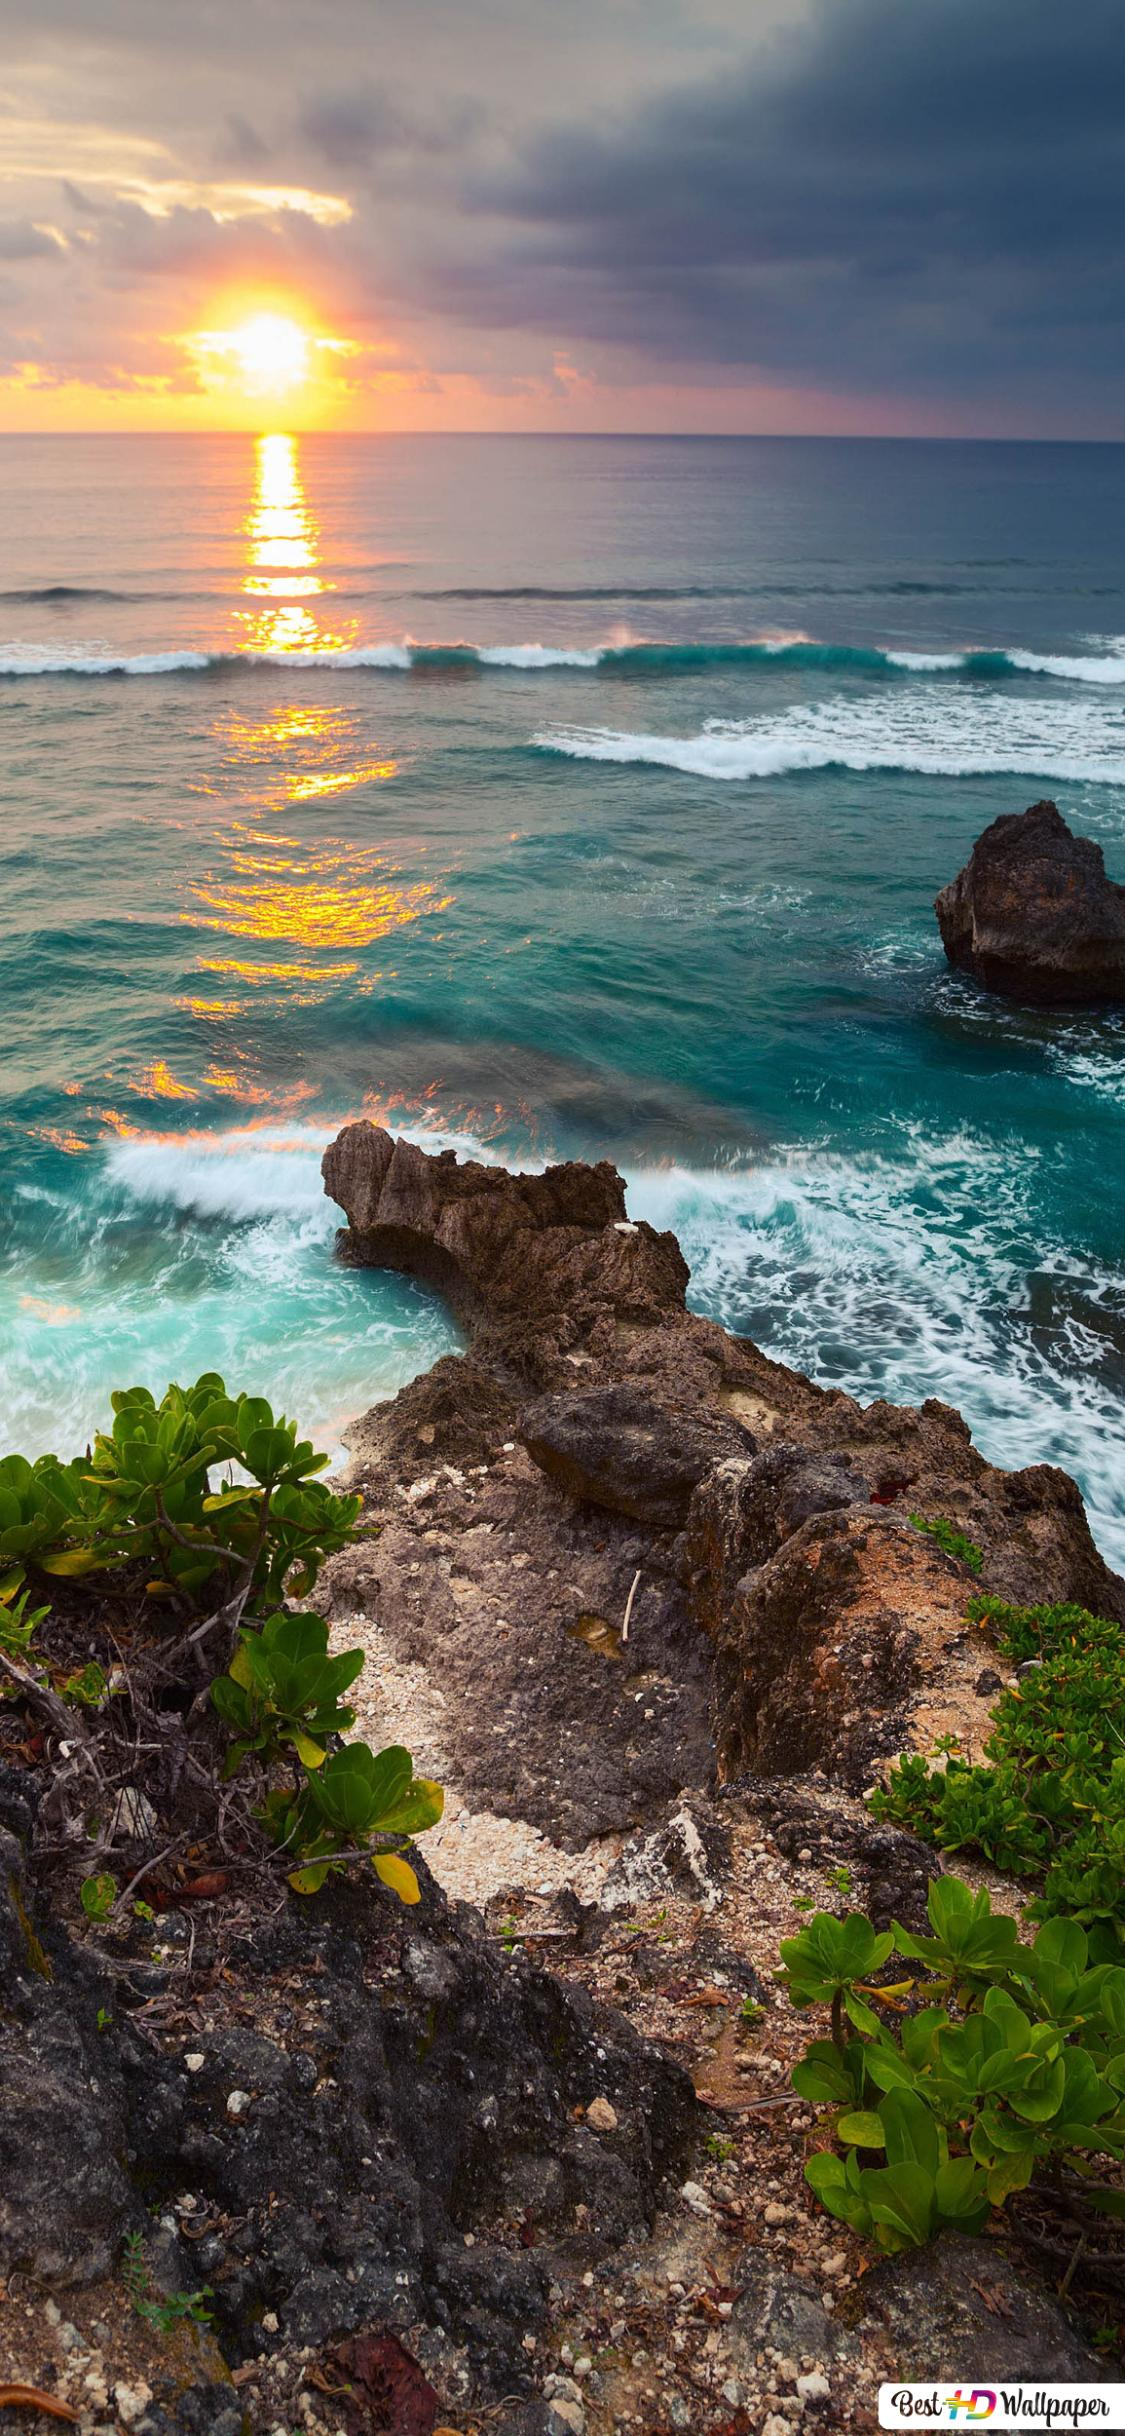 sunset over coast of indonesia wallpaper 1125x2436 27917 215